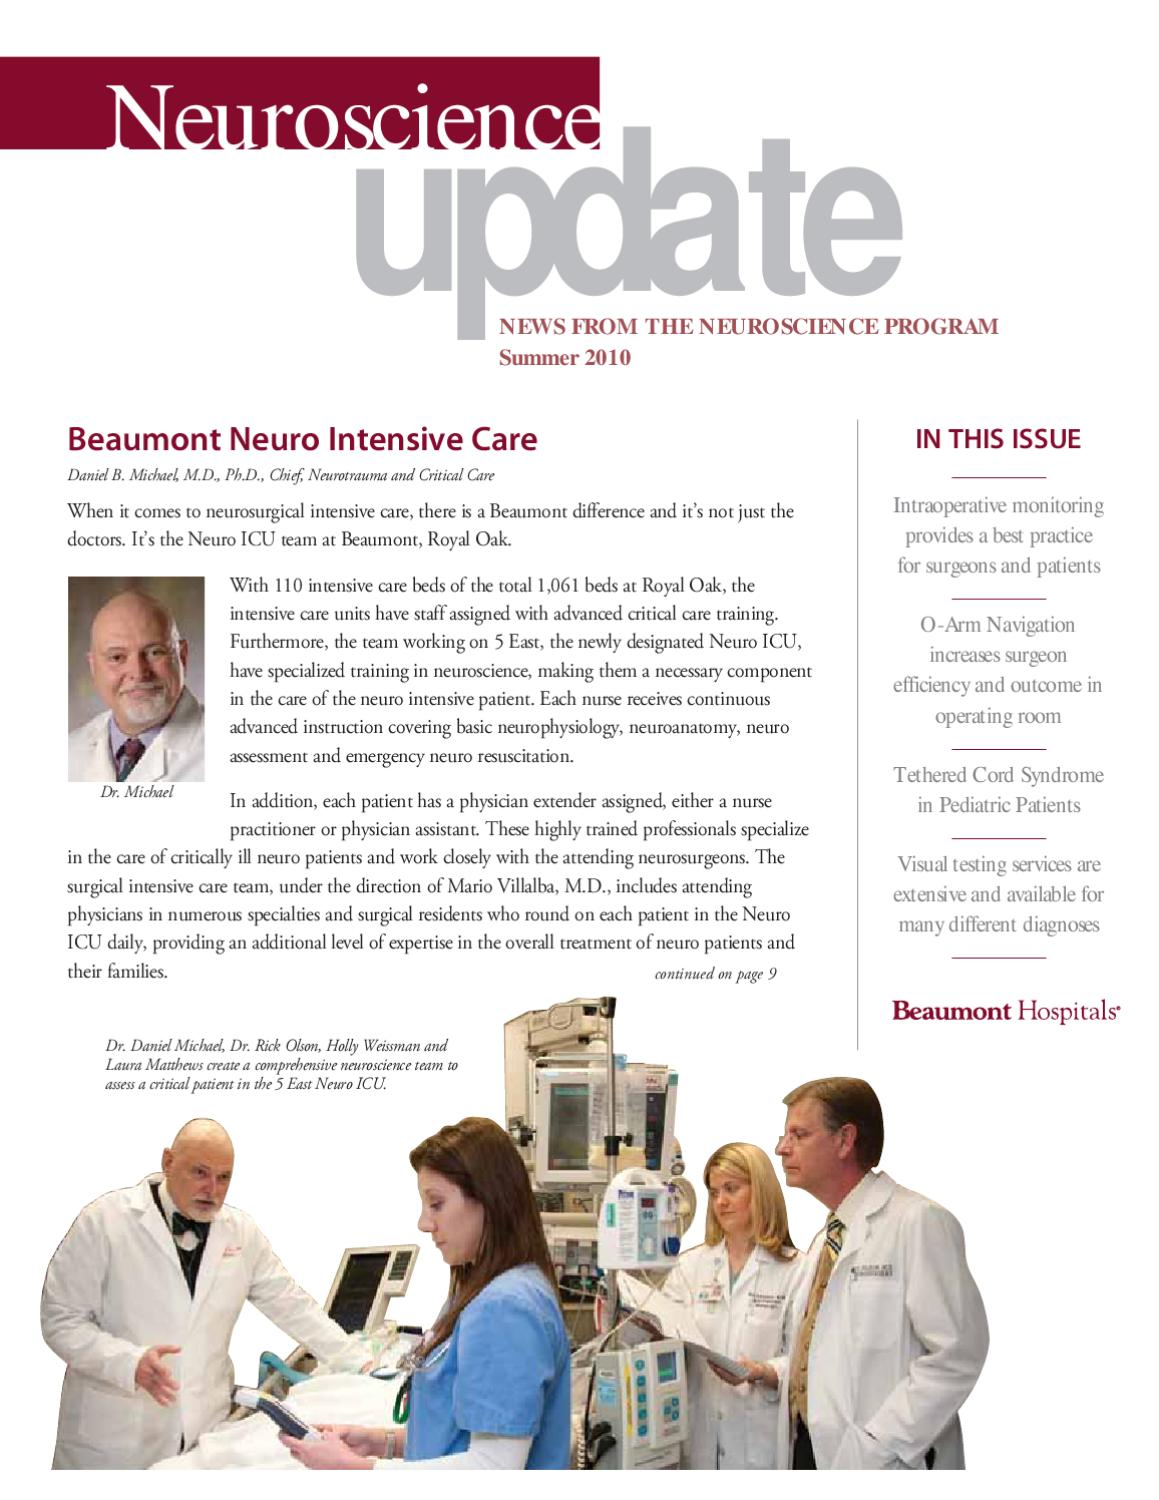 Neuroscience Update - Spring 2010 by Beaumont Health - issuu